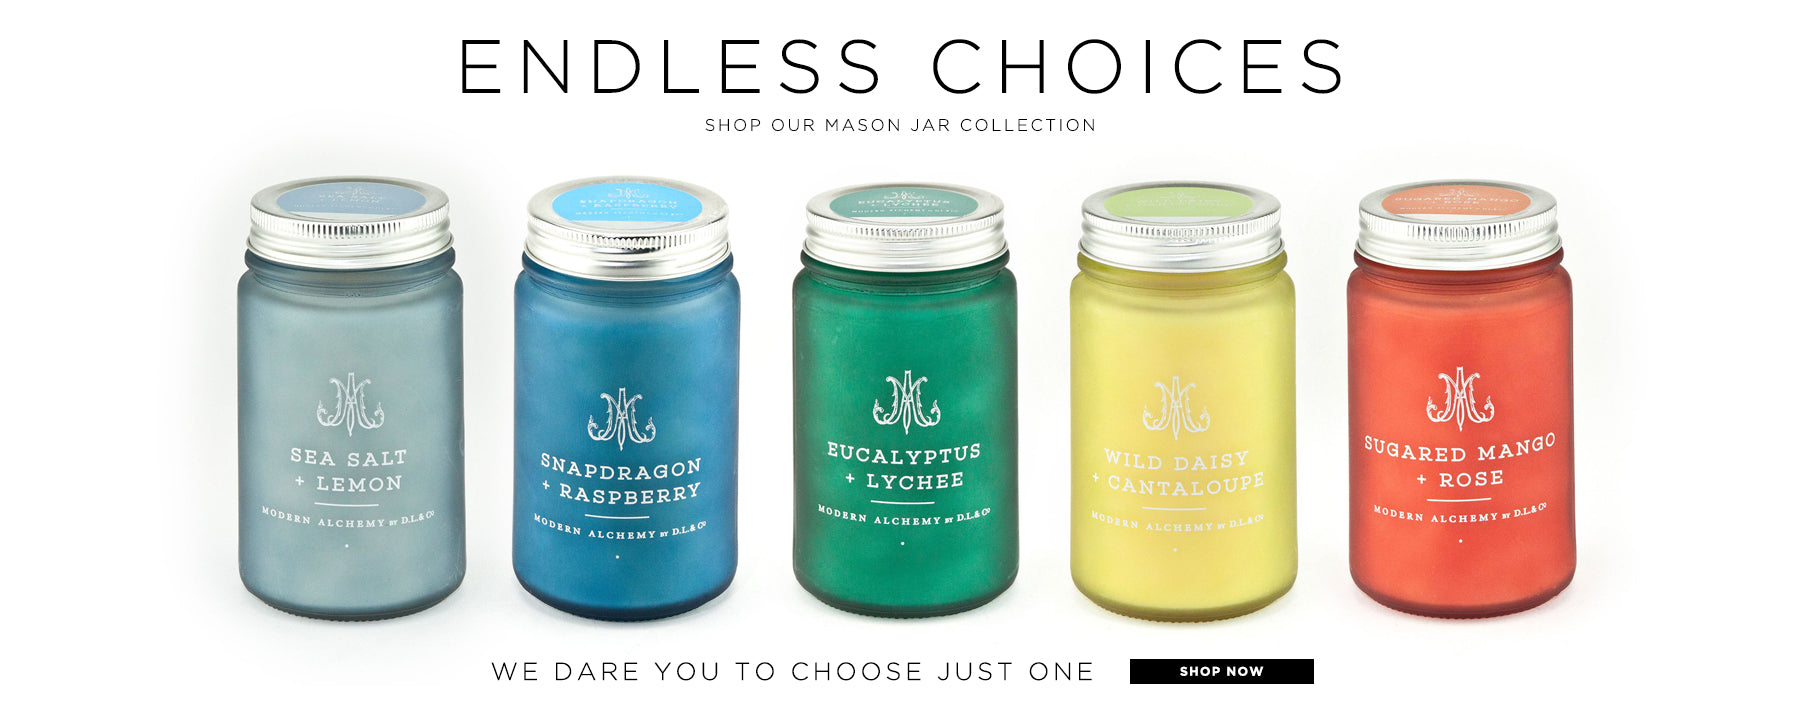 Endless choices. Shop our mason jar collection. We dare you to choose just one. Shop now.